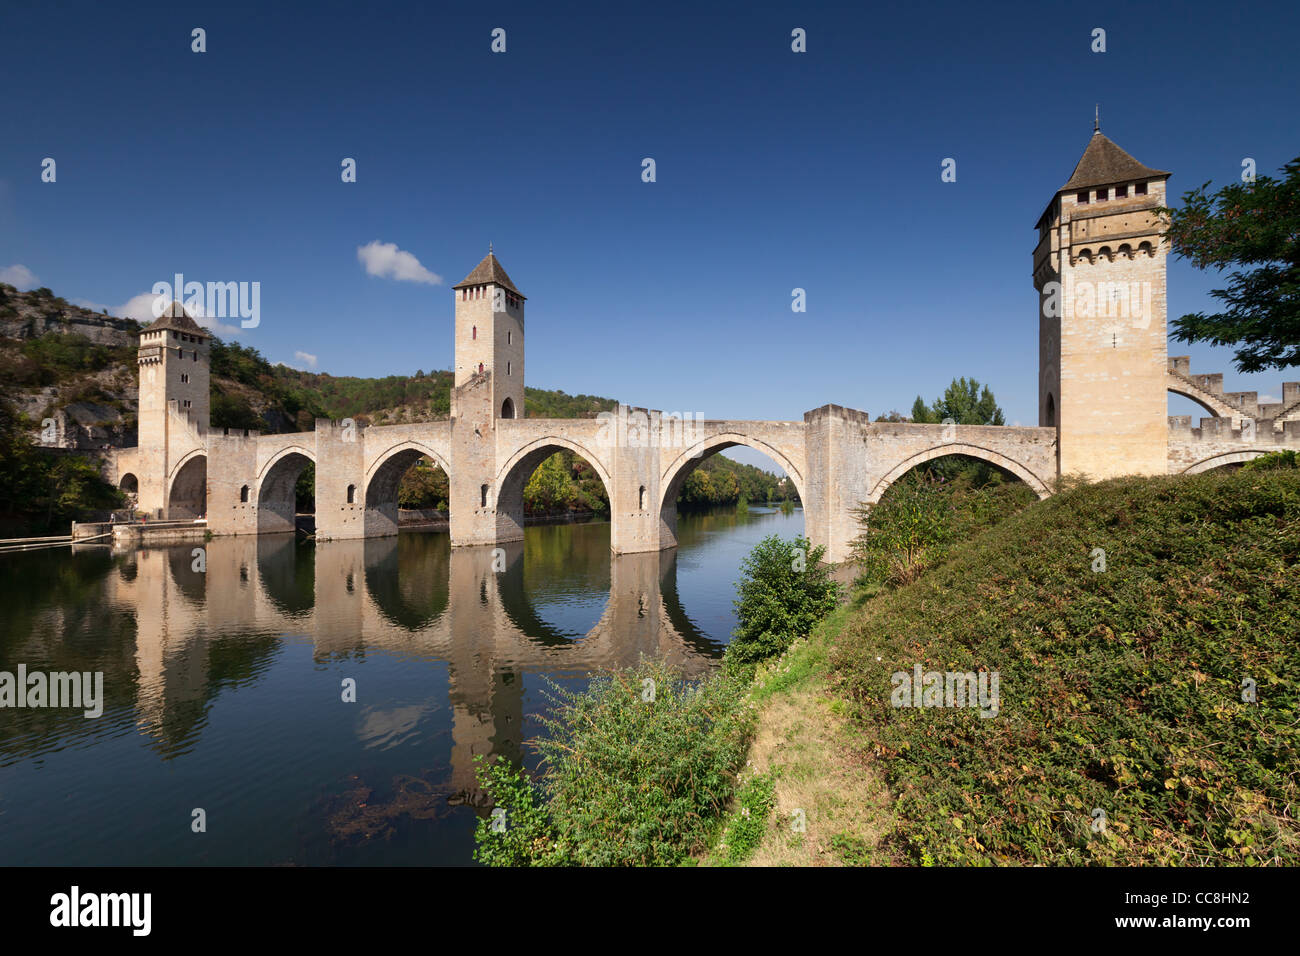 The Pont Valentre, symbol of the city of Cahors, crossing the River Lot. - Stock Image